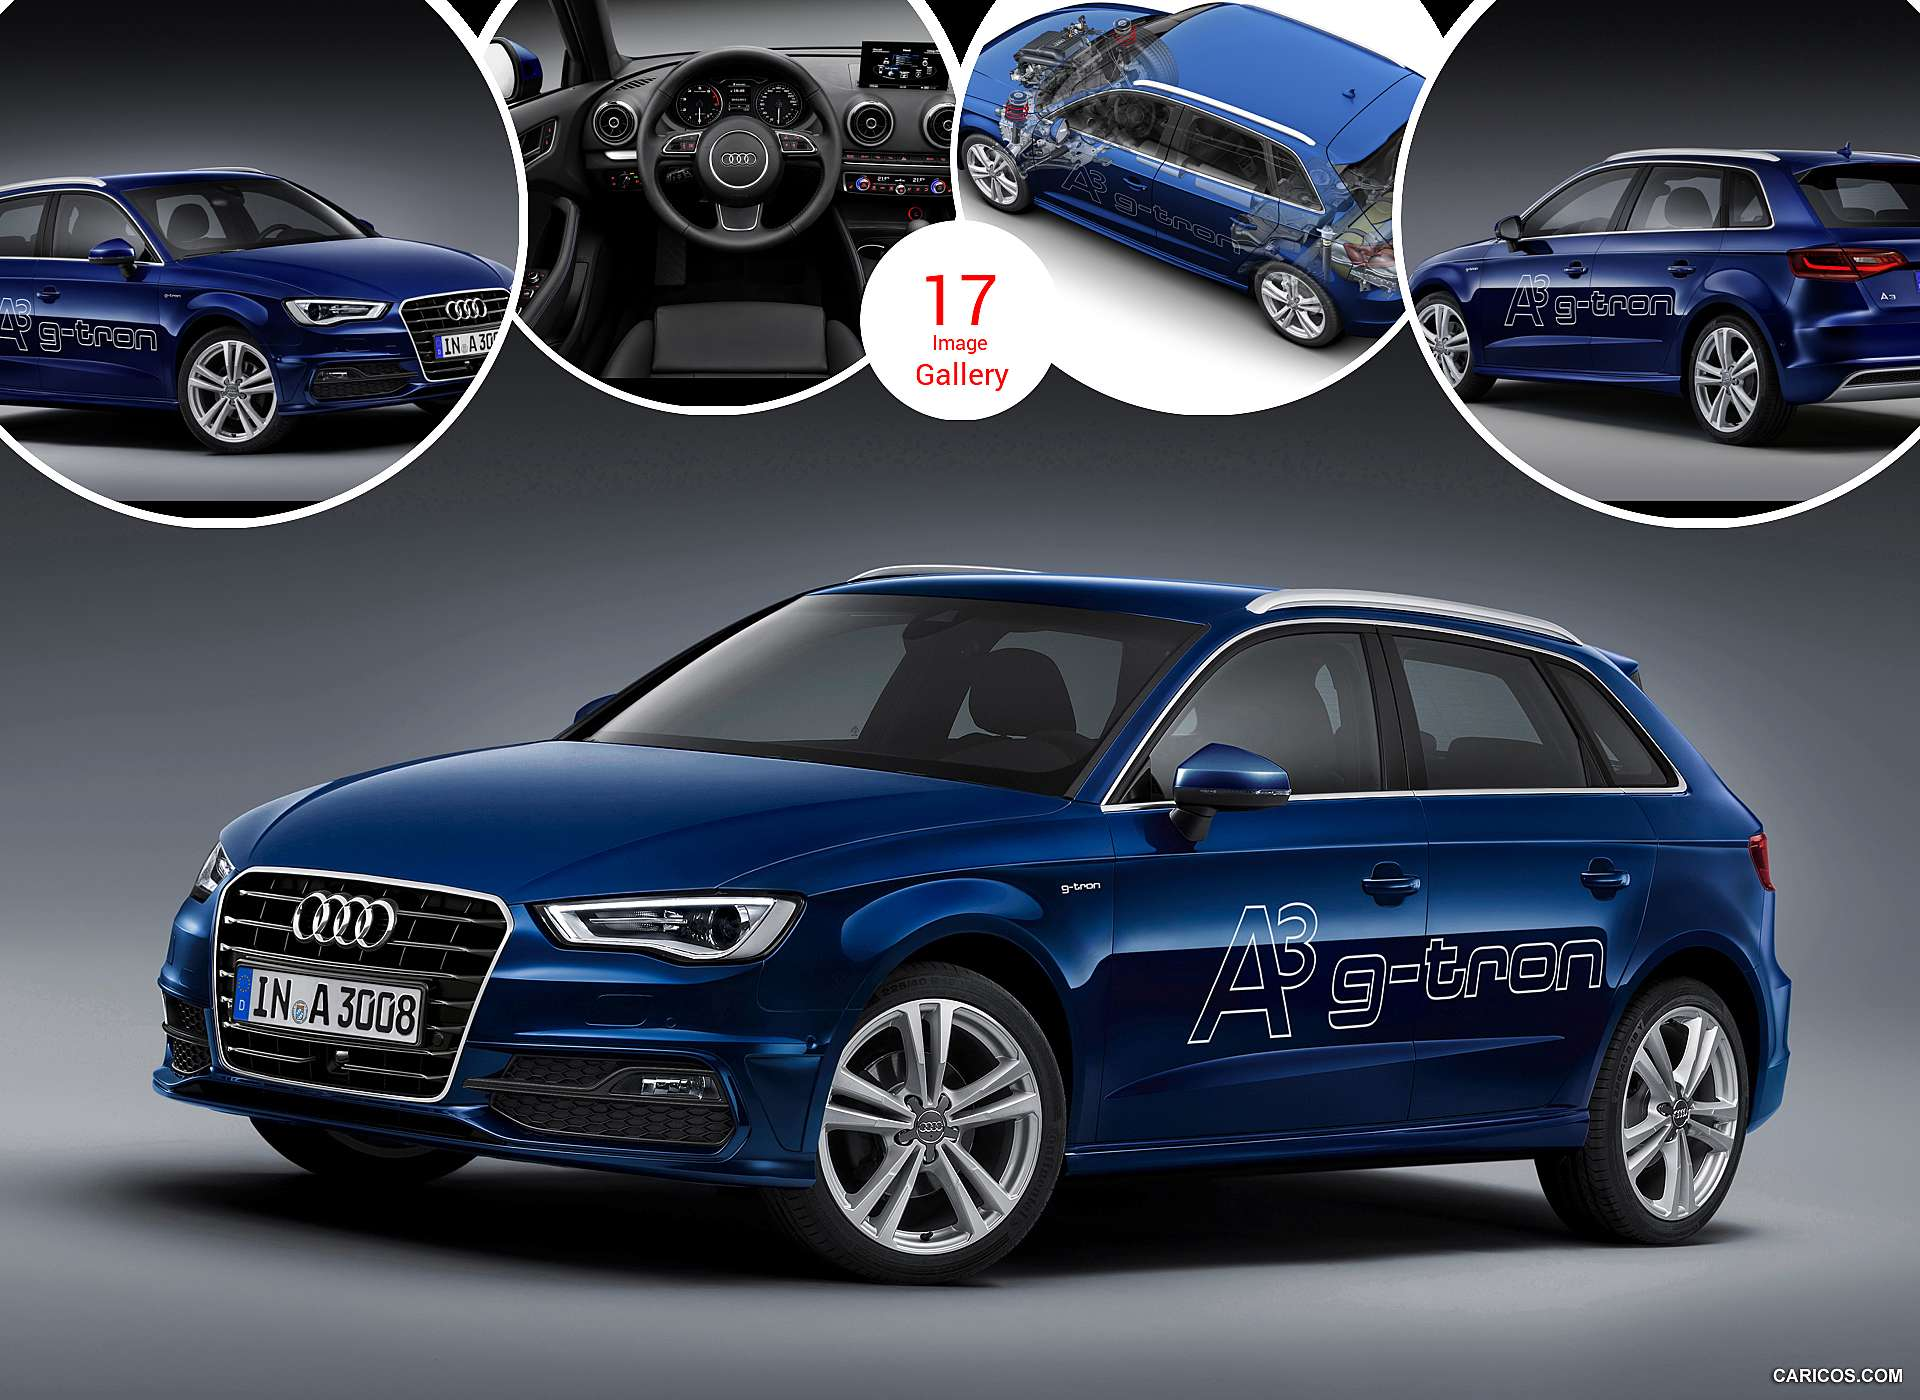 2014 audi a3 sportback g tron. Black Bedroom Furniture Sets. Home Design Ideas